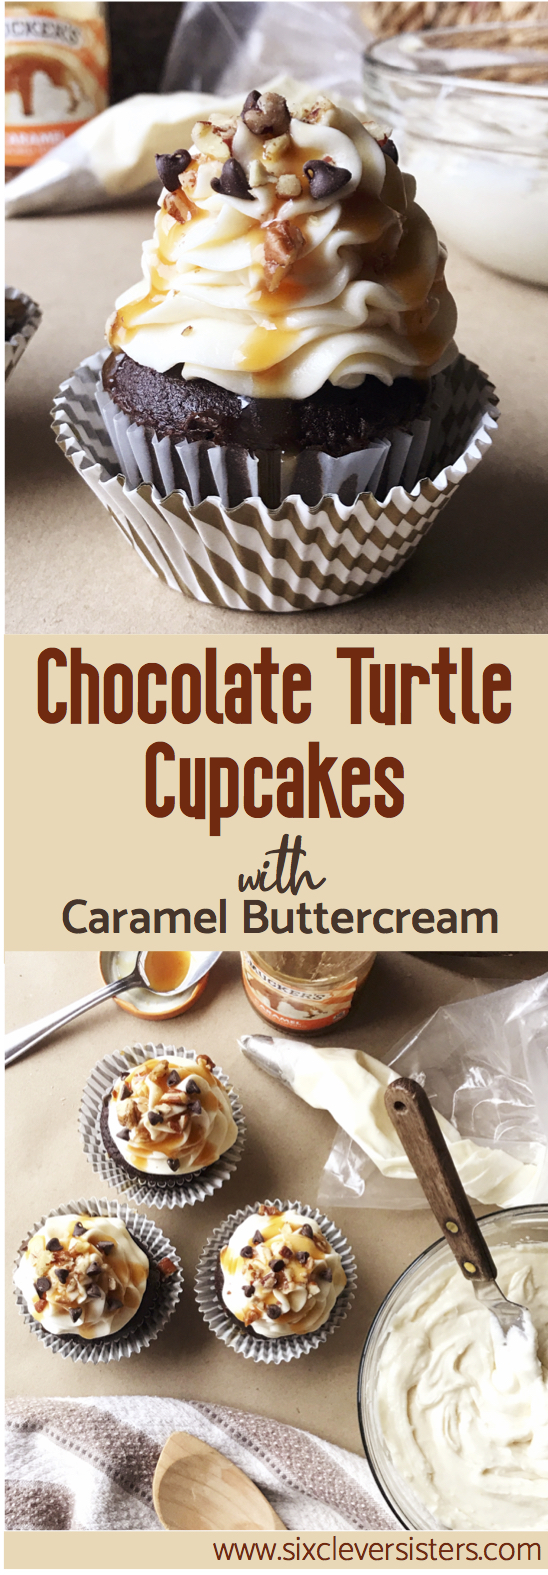 Chocolate Turtle Cupcakes with Caramel Buttercream | Cupcakes | Chocolate | Caramel | Easy Frosting Recipe | Buttercream | Caramel Buttercream | Cupcake Recipe | Pecan | Dessert | Easy Dessert | Cake | Turtle Cake | Recipe | Six Clever Sisters